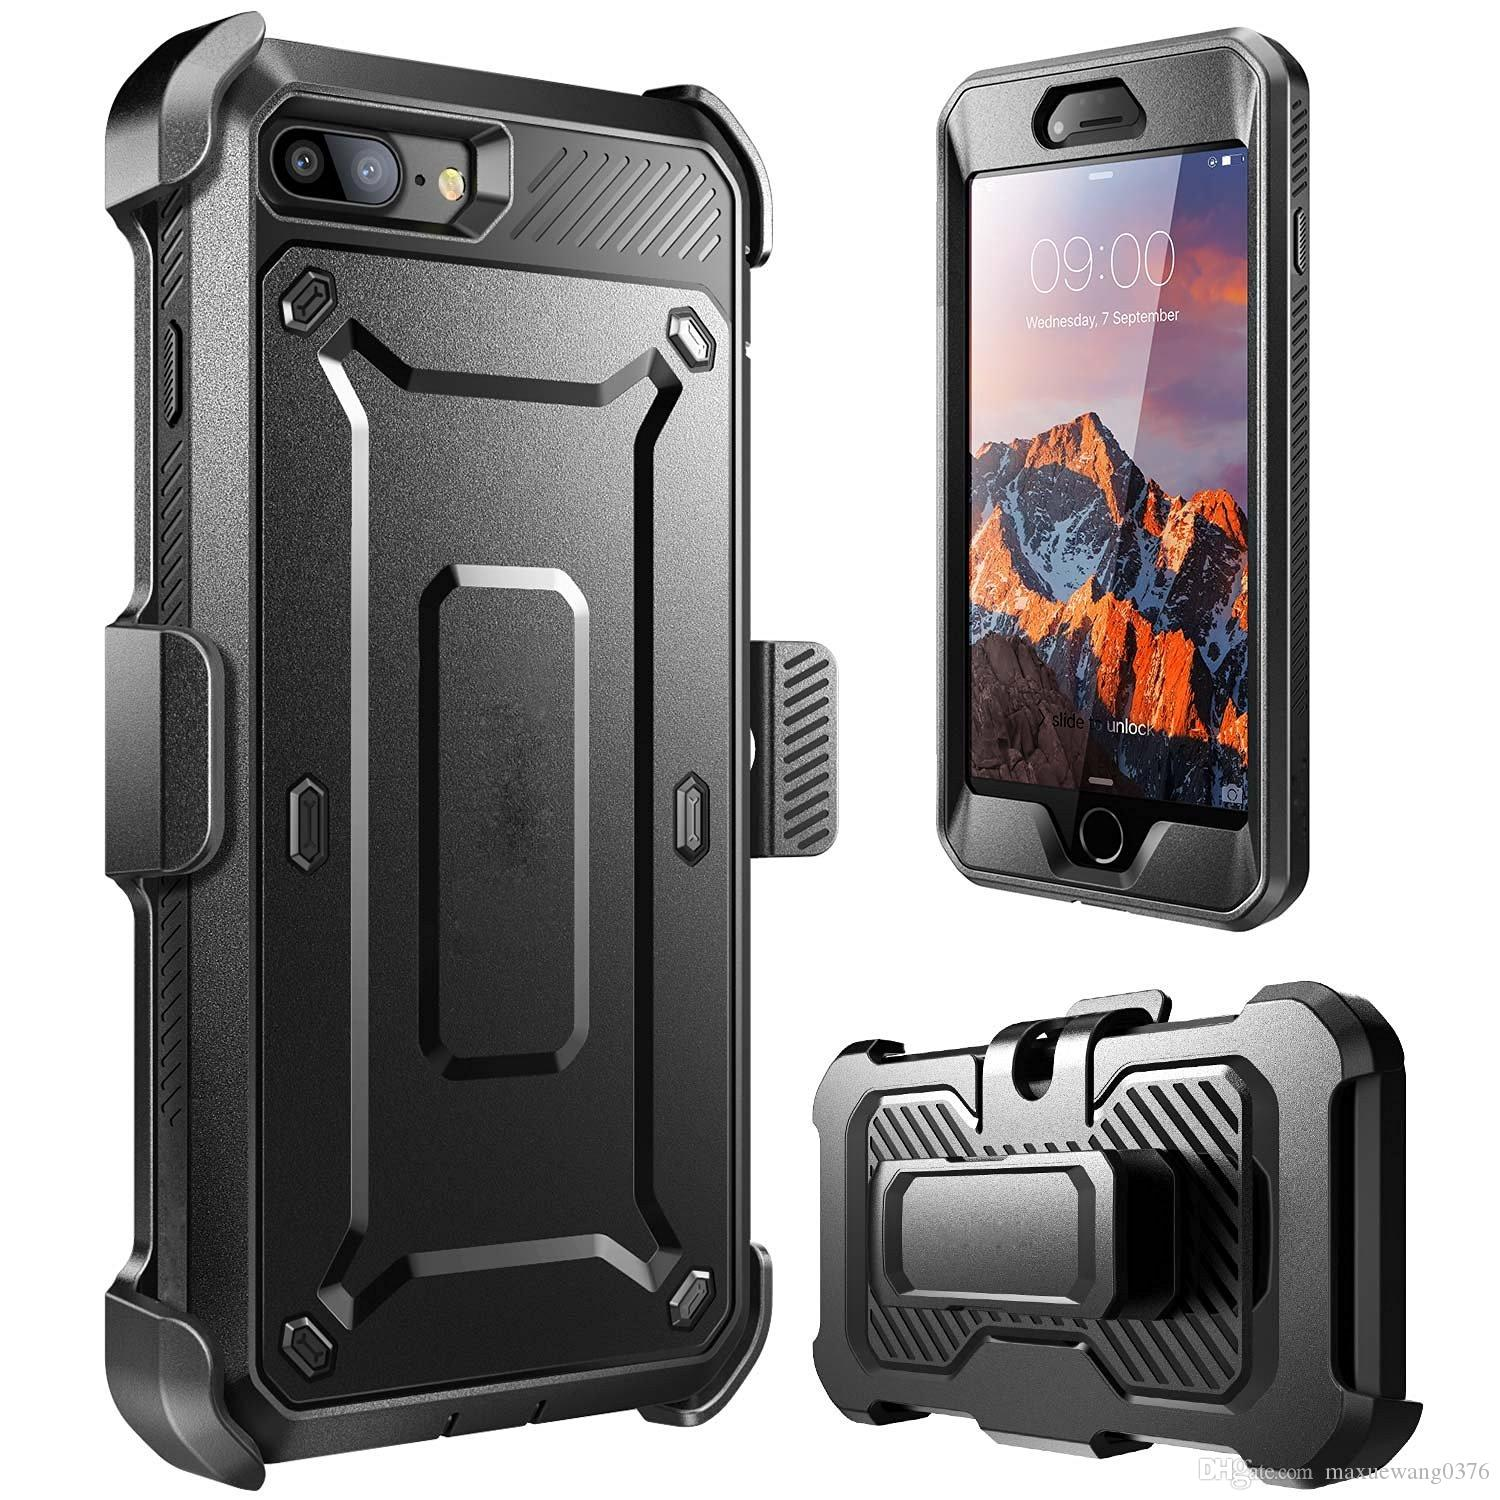 low priced f499d d199f Luxury Armor Defender Hybrid Heavy Duty ShockProof With Clip Built-in  Screen Protector Phone Case Cover For iphone 7 7 Plus 6/6s Plus 5s